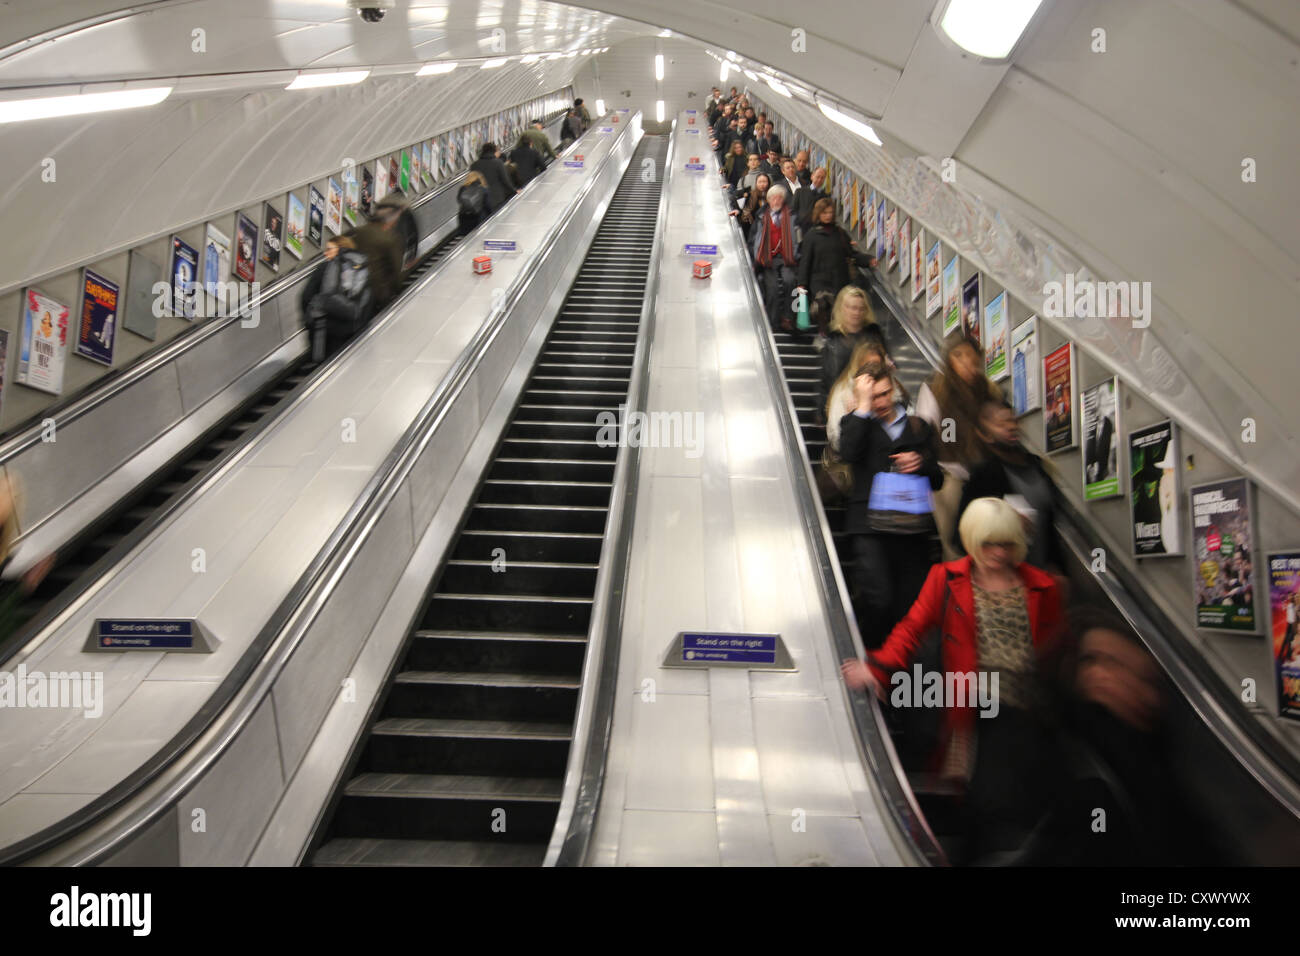 London, England, U.K., tube staircase, stairway, people going down on underground staircase, escalators - Stock Image